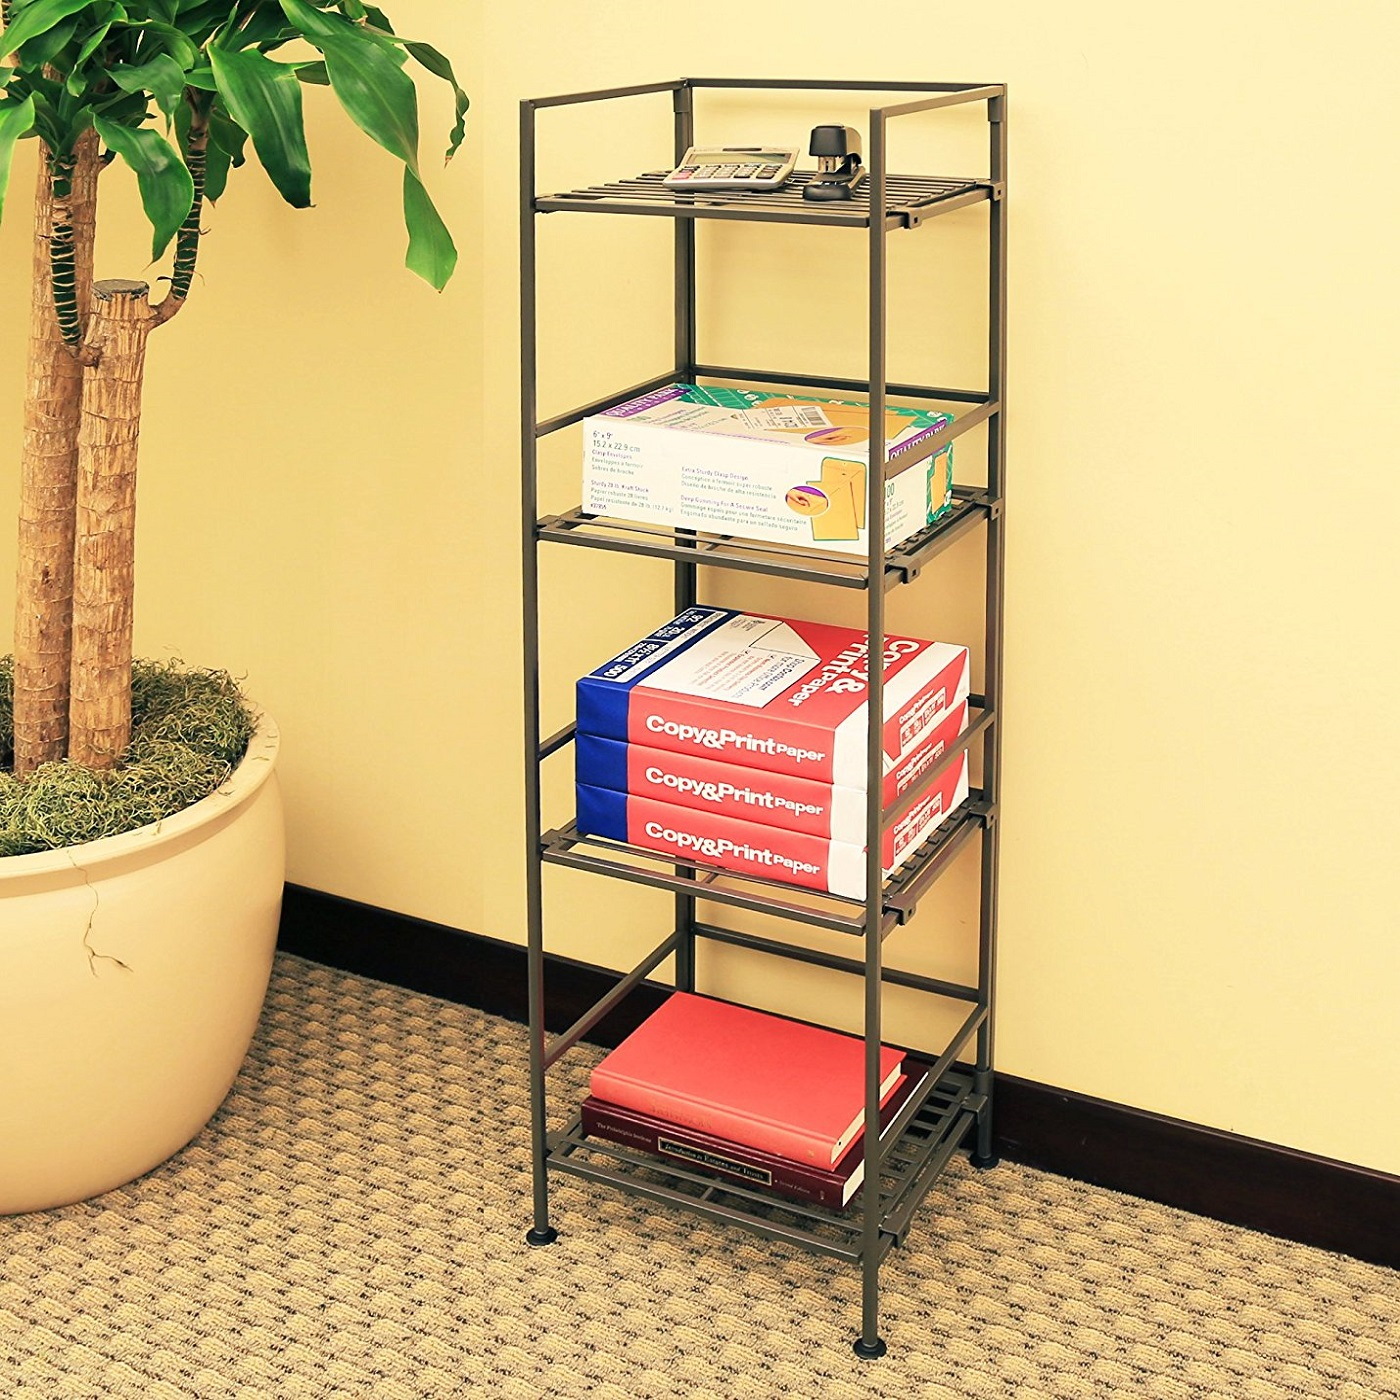 Seville Square 4-Tier Tower Shelving